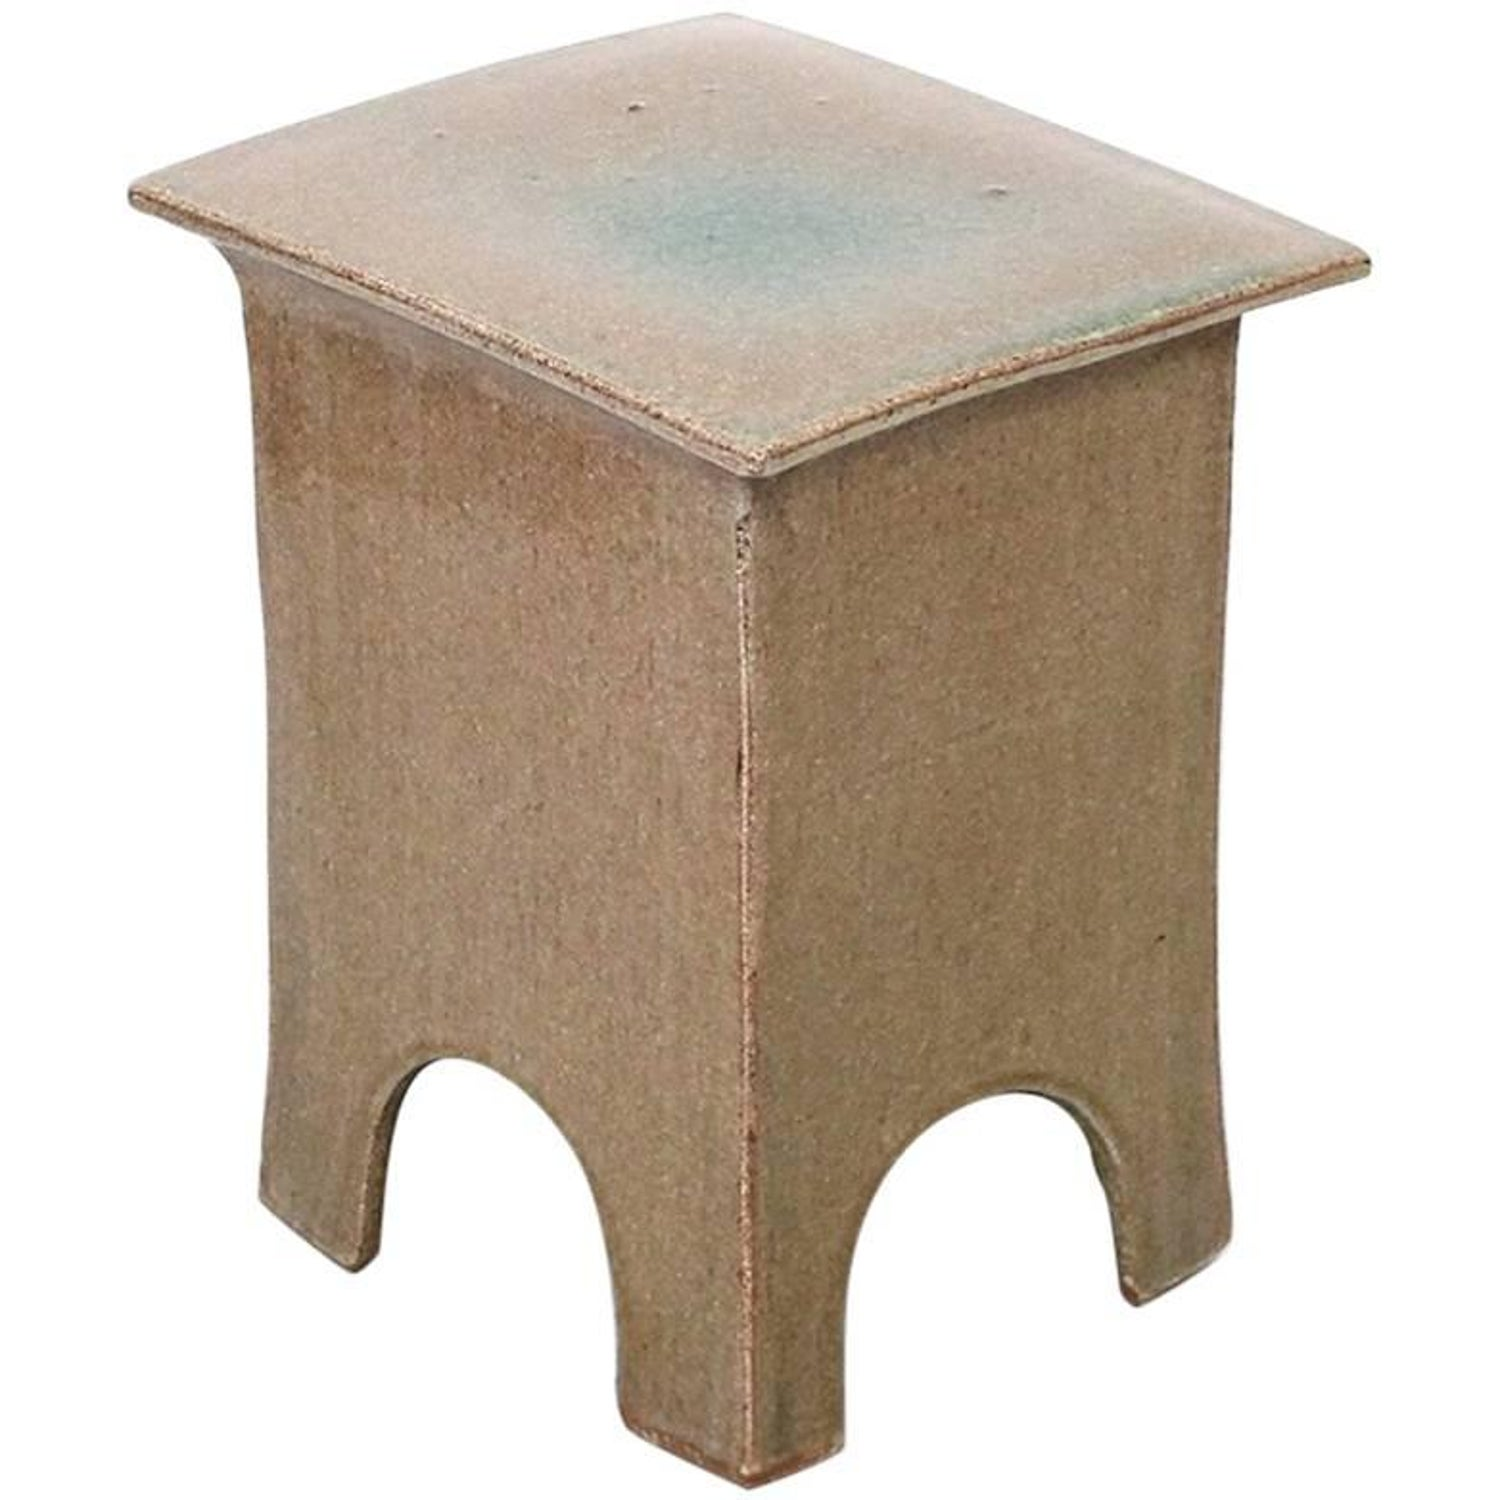 Ceramic Stools - 108 For Sale at 1stdibs